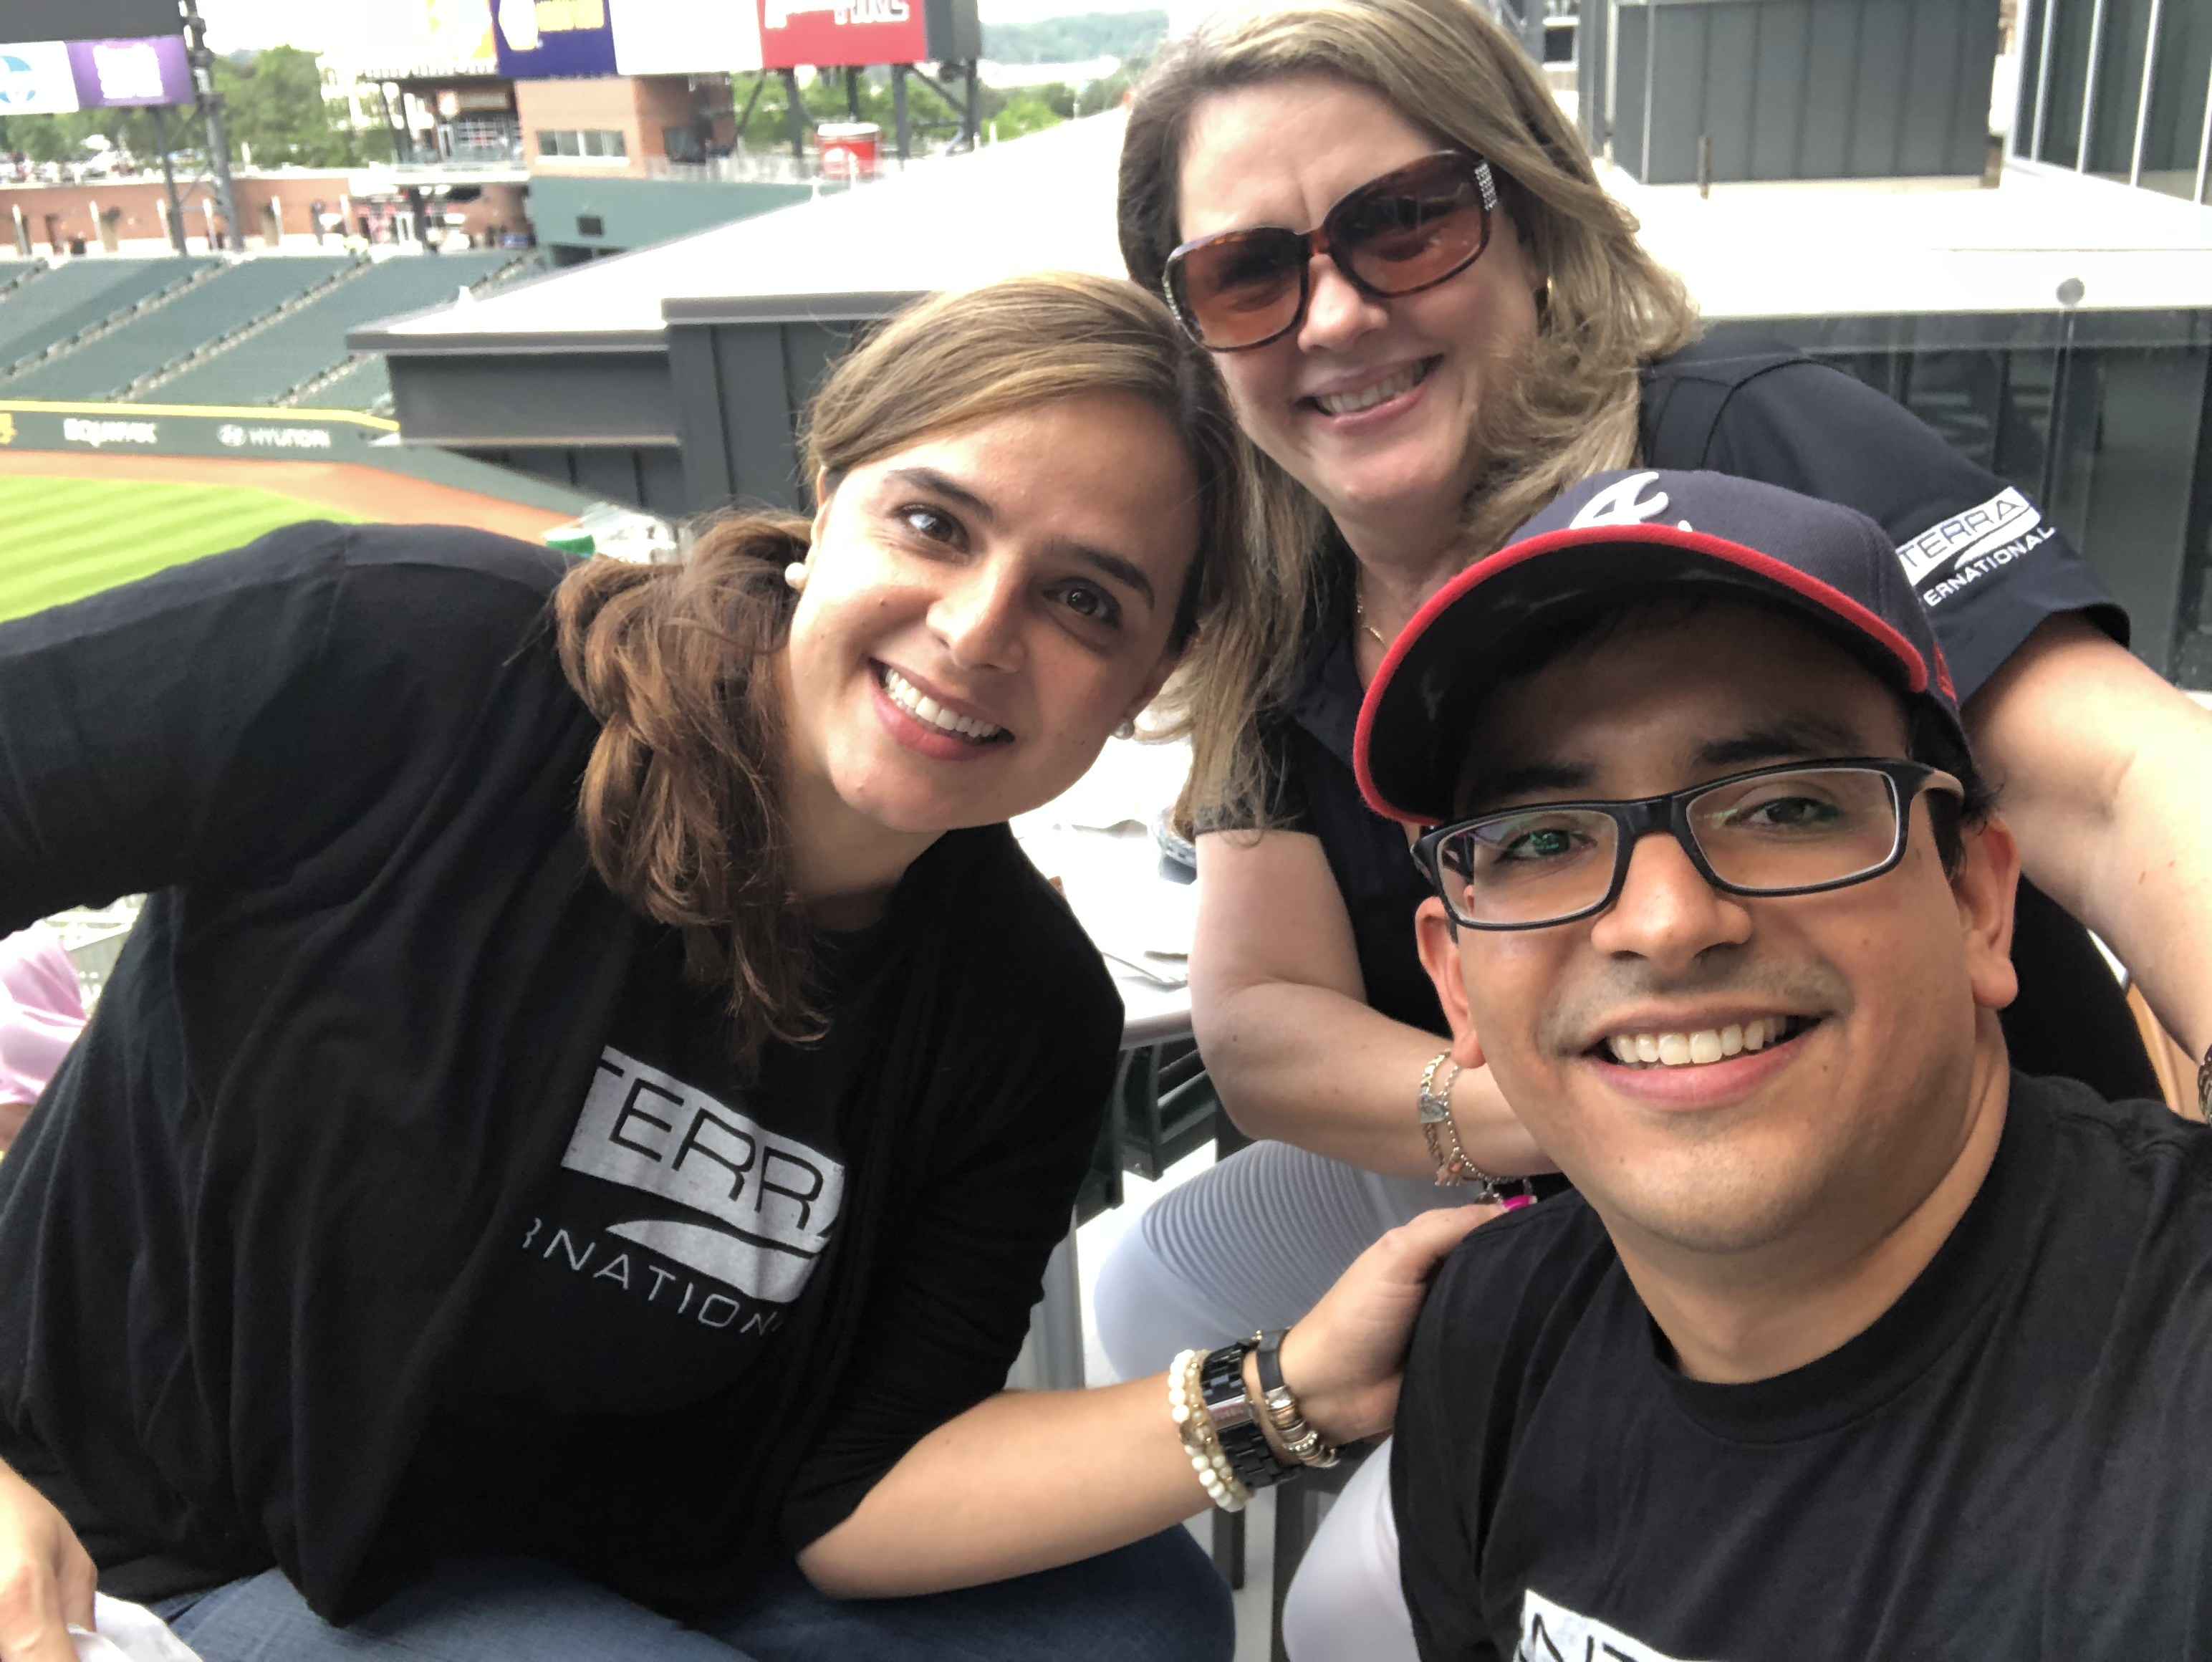 Interra Team At The UGA Vs GT Baseball Game 2018